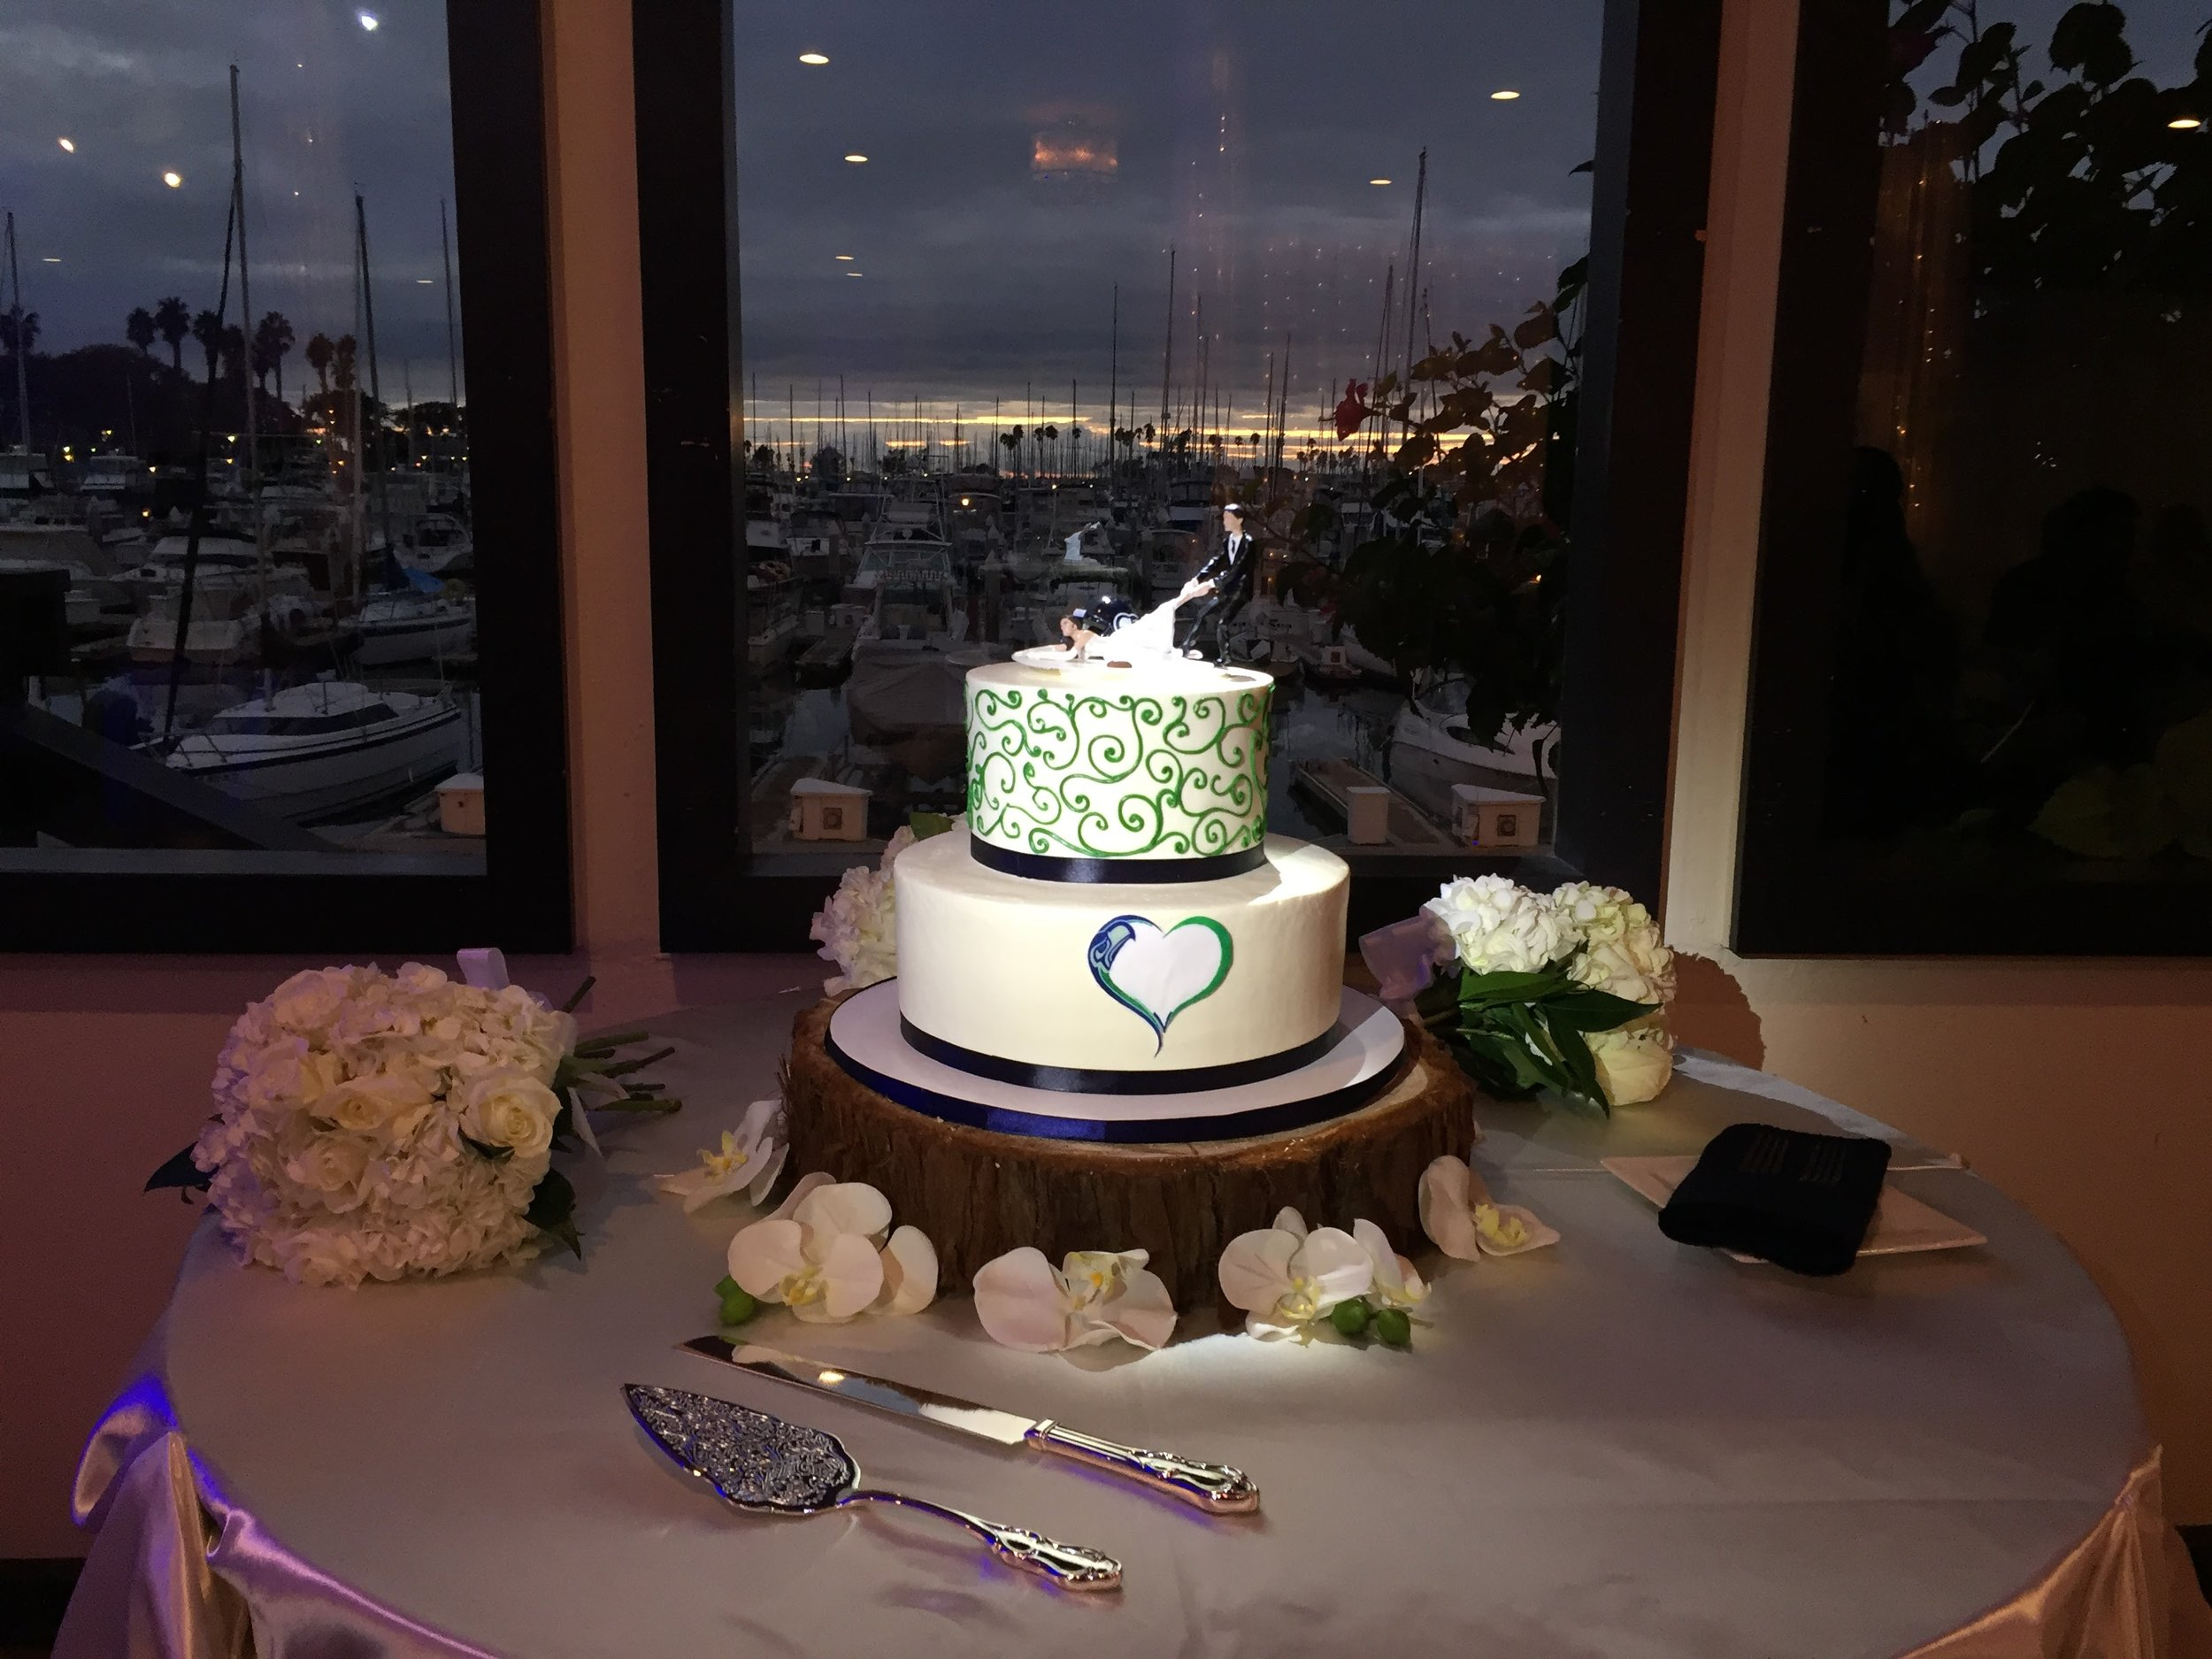 Joeleen and Mike's wedding cake colors were inspired by their fandom of the Seattle Seahawks.